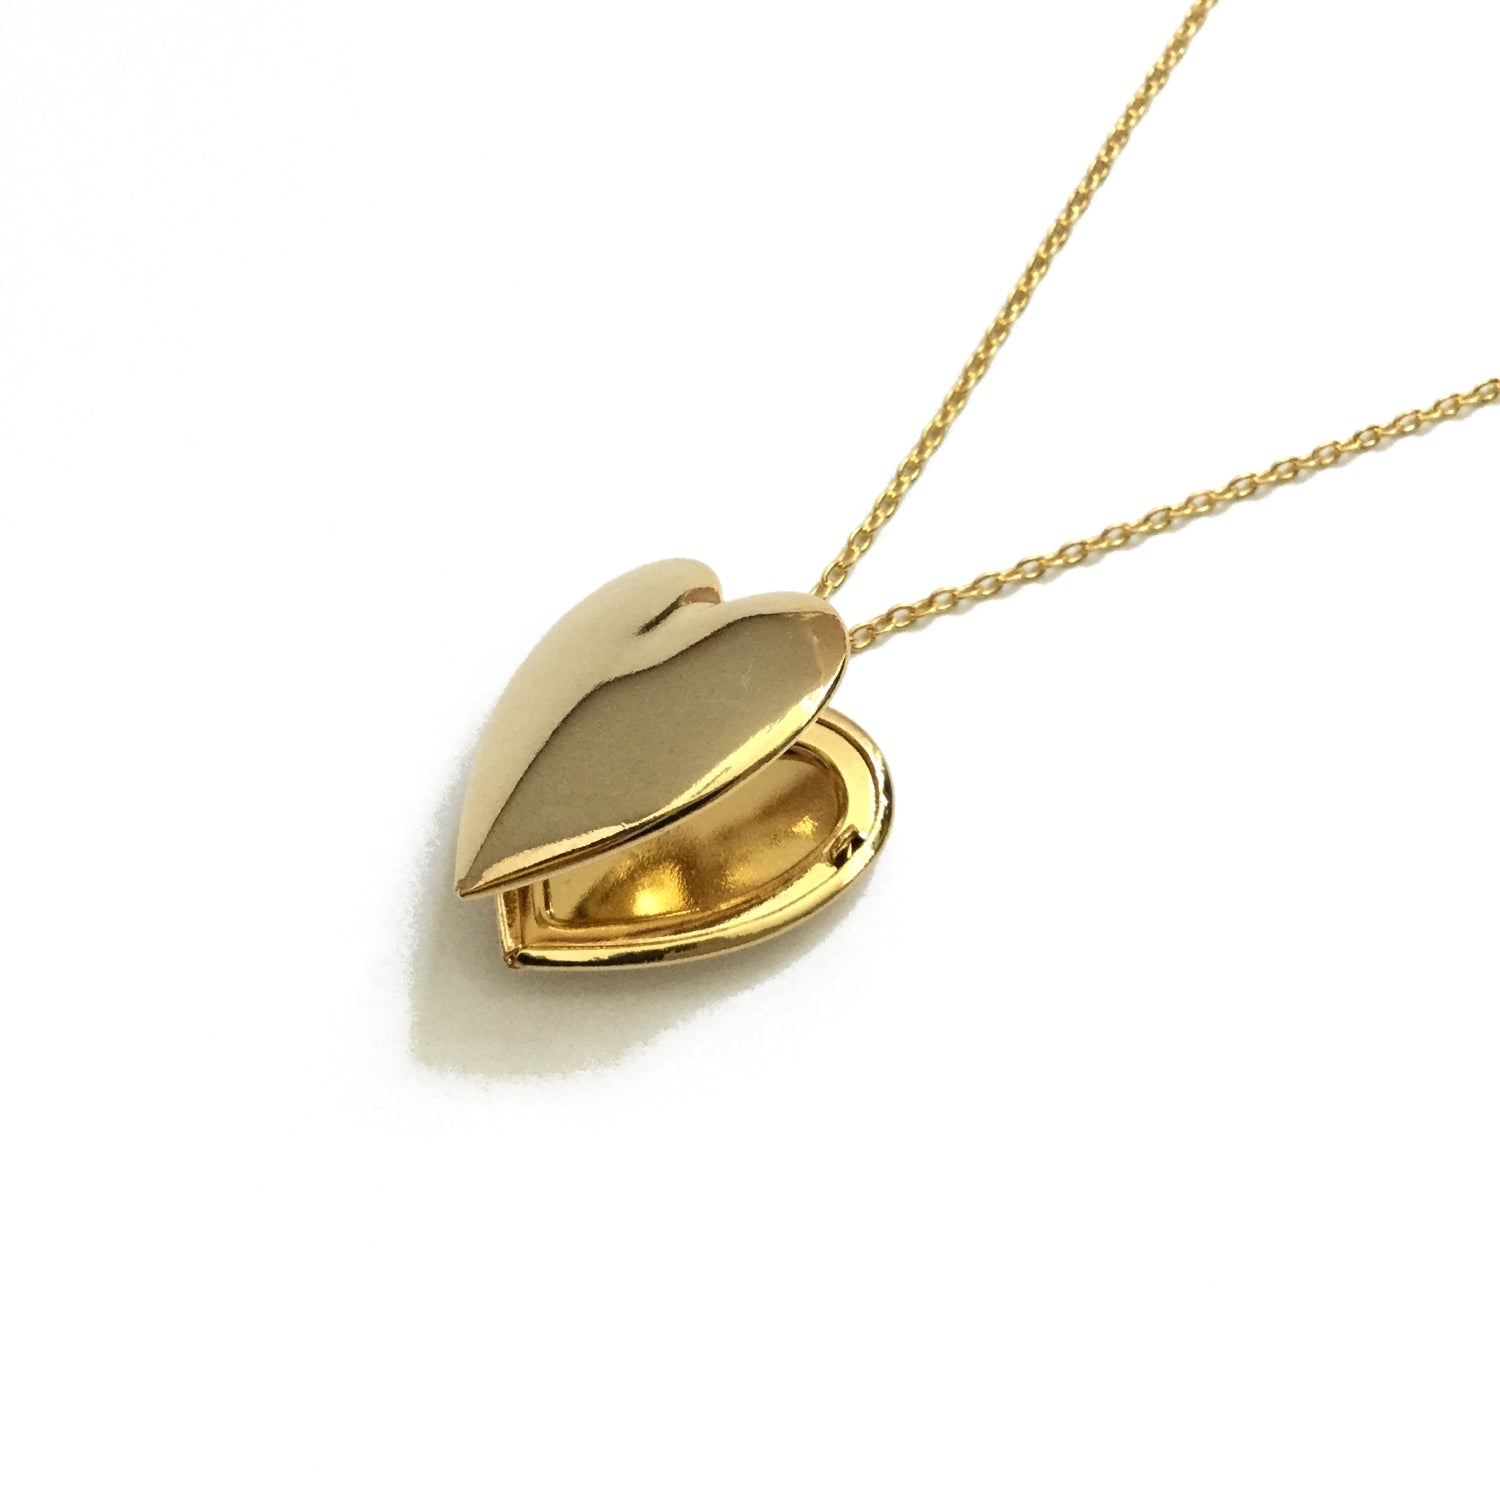 Minimalist gold plated heart shaped locket necklace